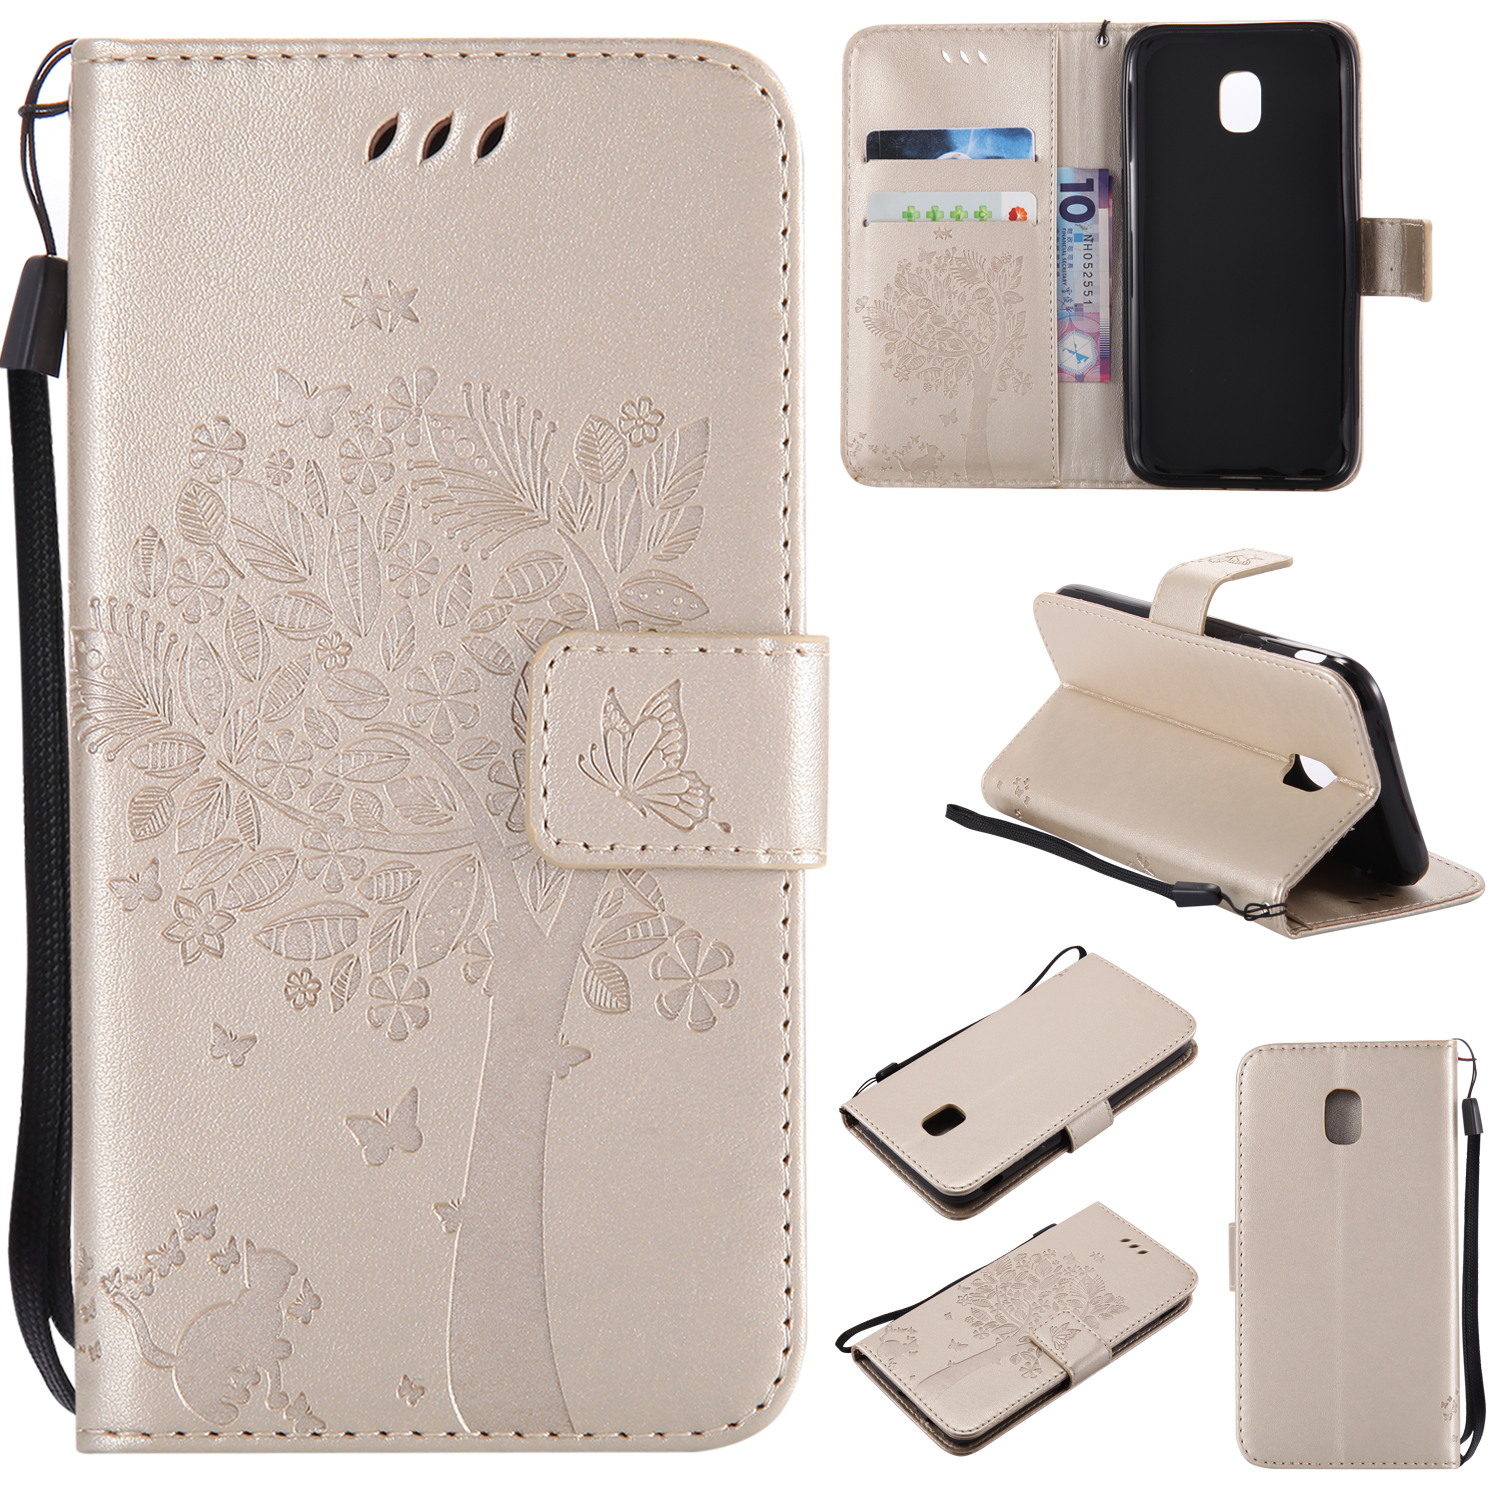 2017 Flip Leather Phone Cover SM-J330FN for Samsung Galaxy J3 LTE SM J330 Case for Samsung SM-J330F/DS Galaxy J3 Duos Cases Case